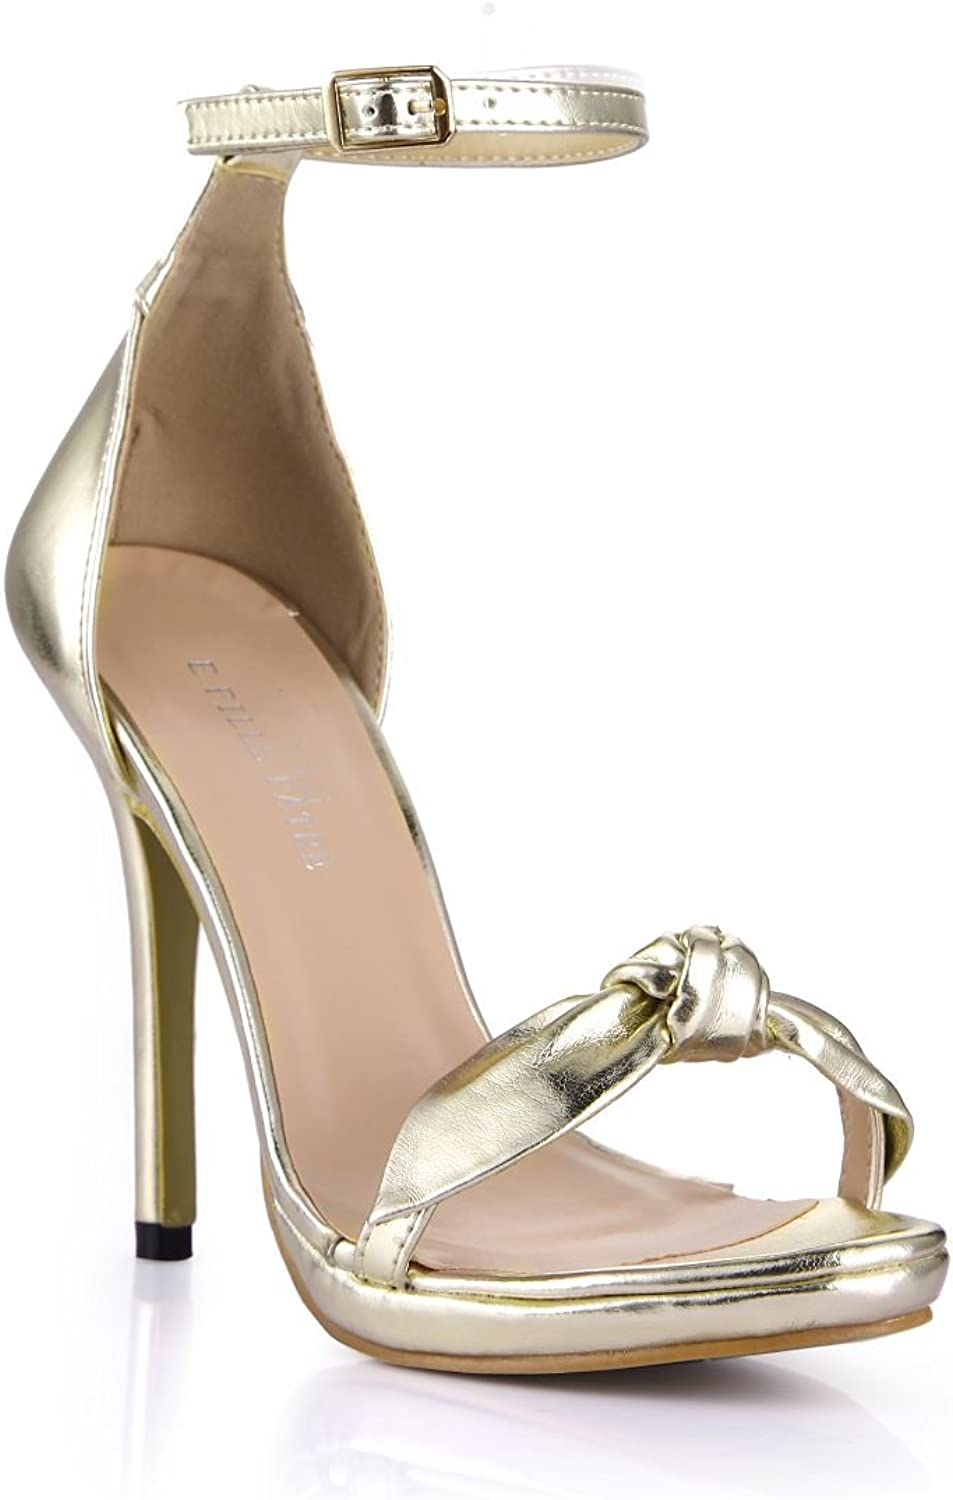 Dolphin Women's golden Bowtie Open Toe High Heel Sandals with Ankle Strap SM00005